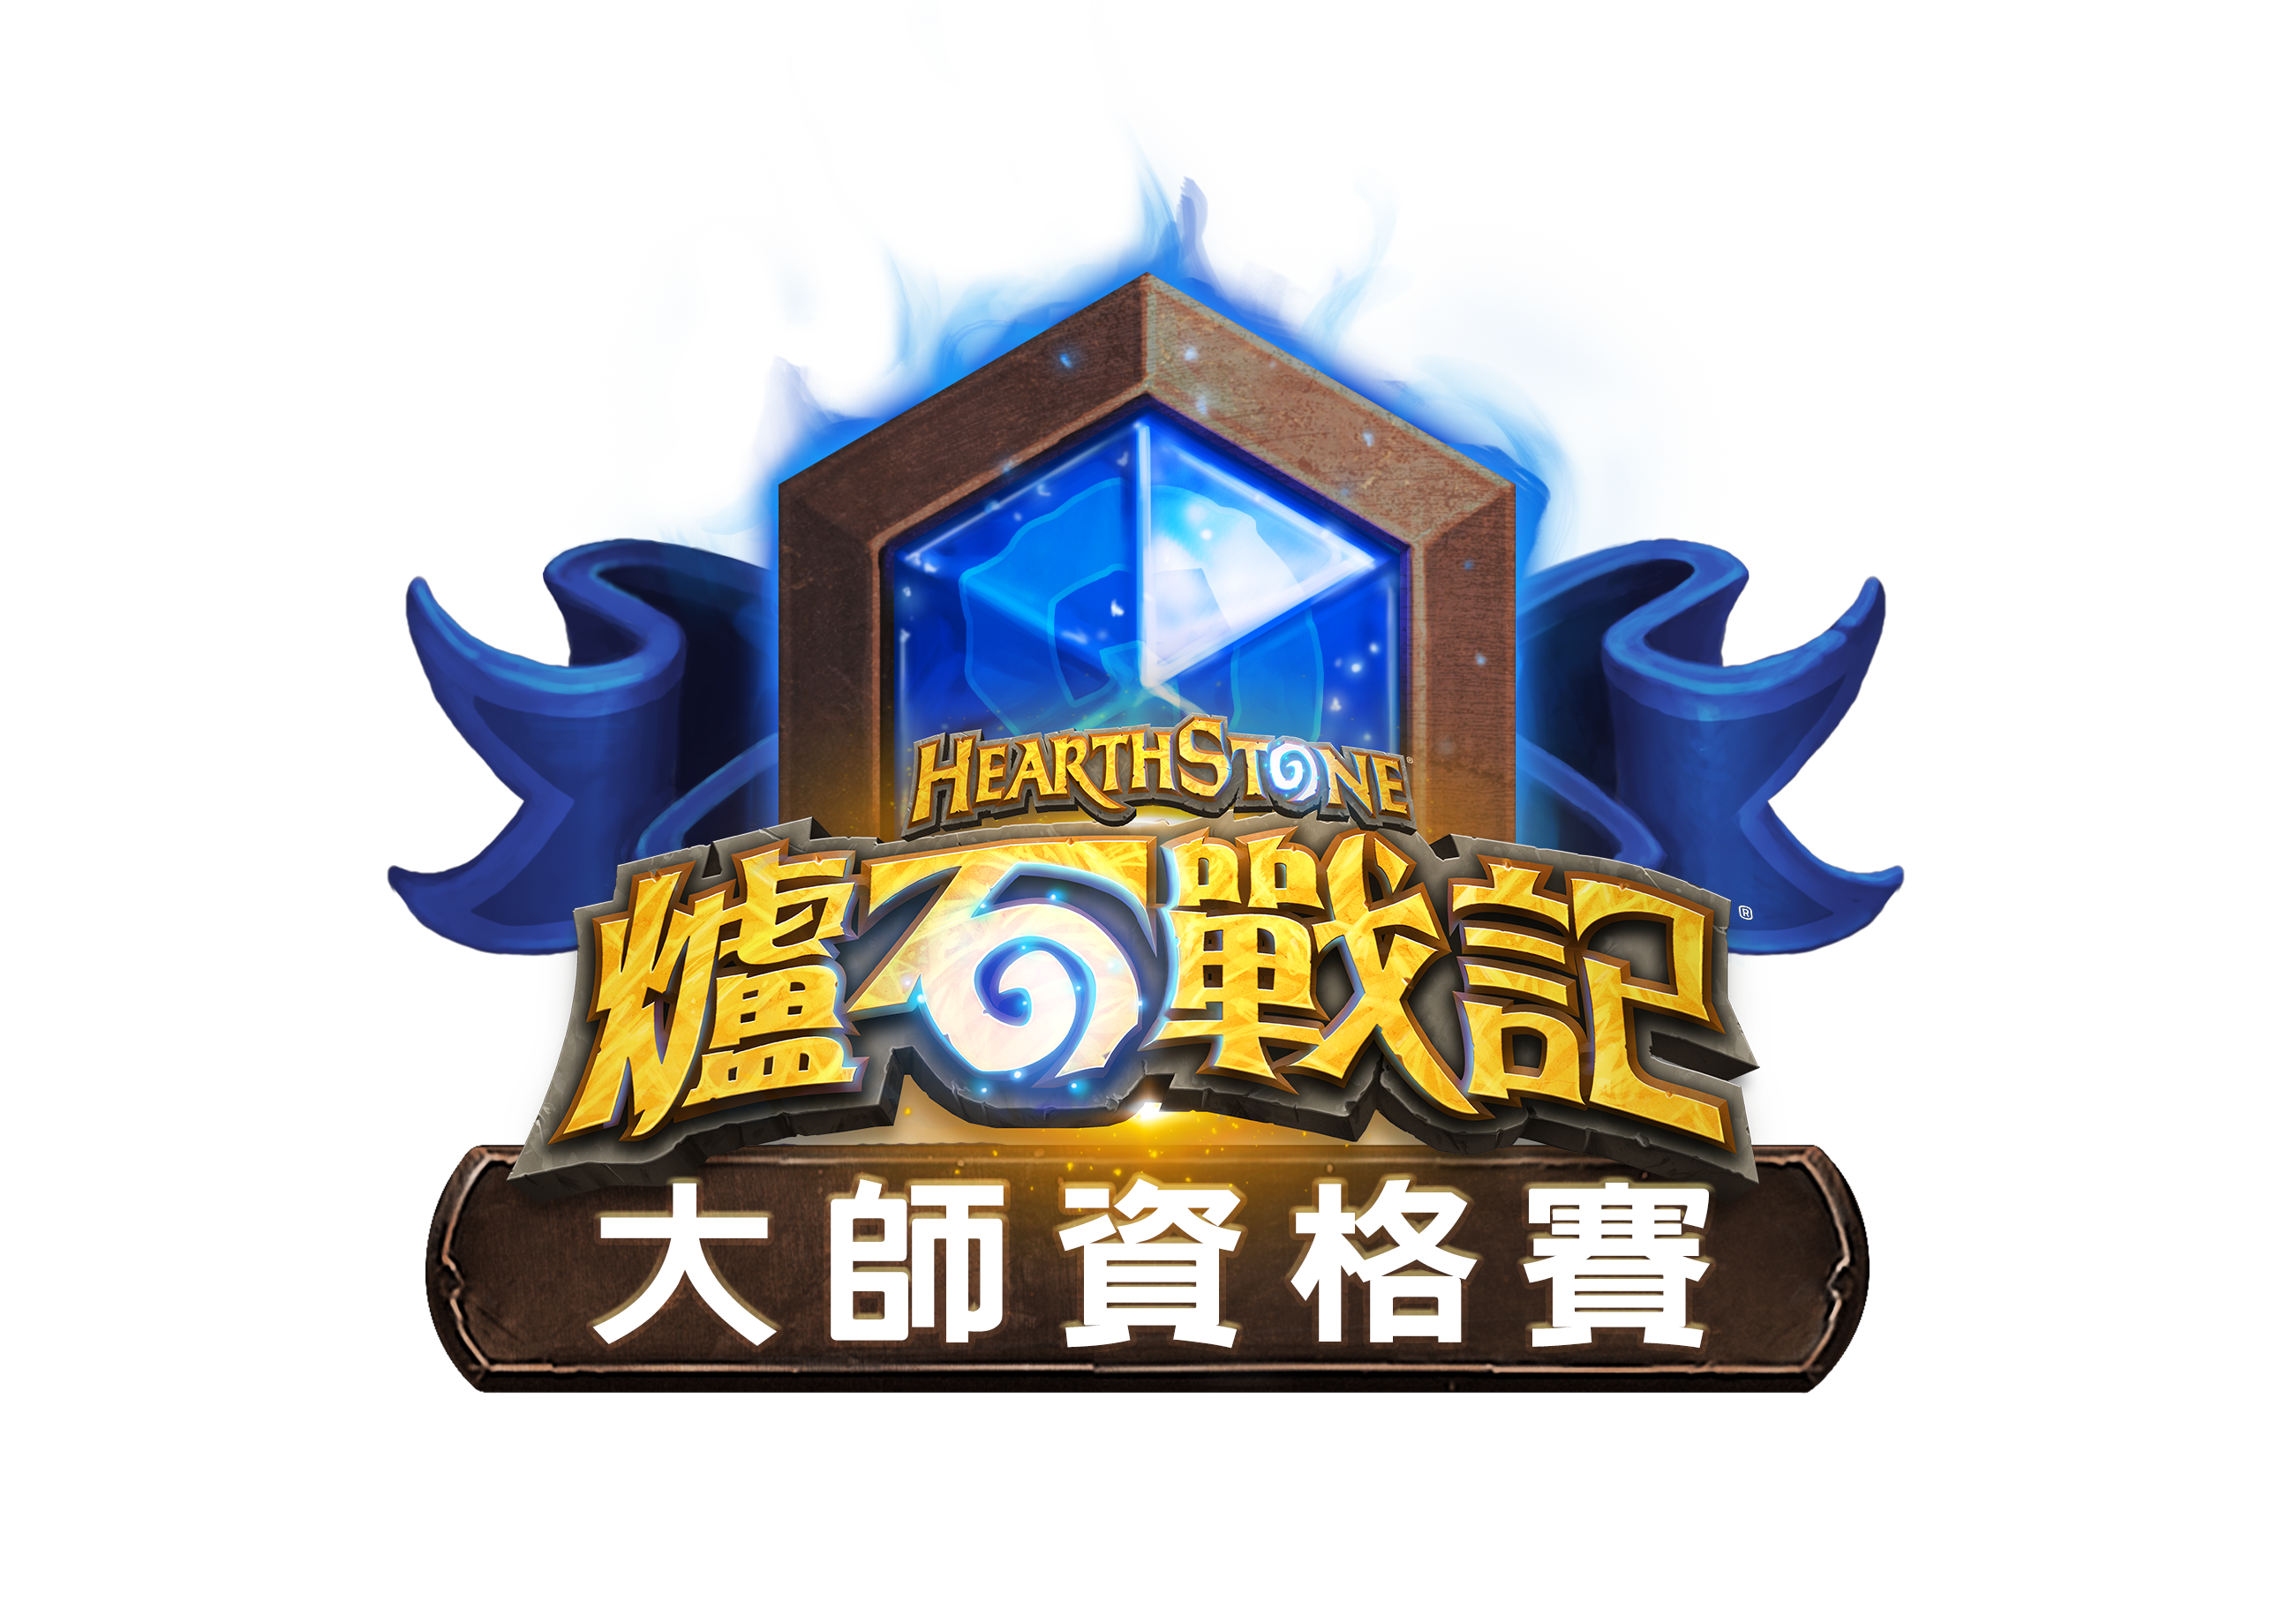 Masters-qualifiers-logo.png